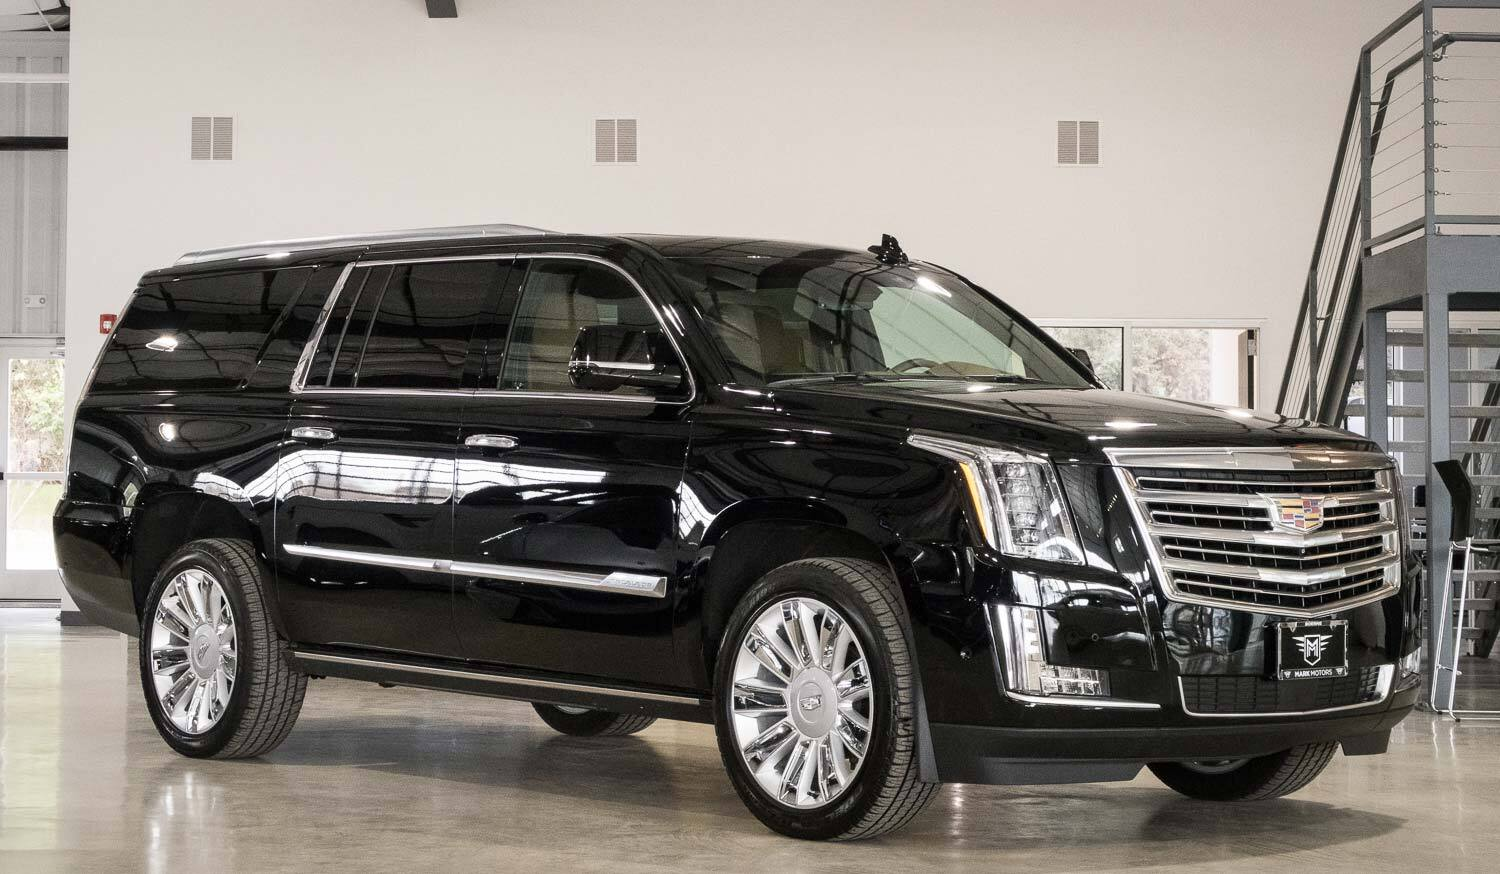 2017 cadillac escalade for sale in san antonio 2017 cadillac escalade in san antonio 2017. Black Bedroom Furniture Sets. Home Design Ideas